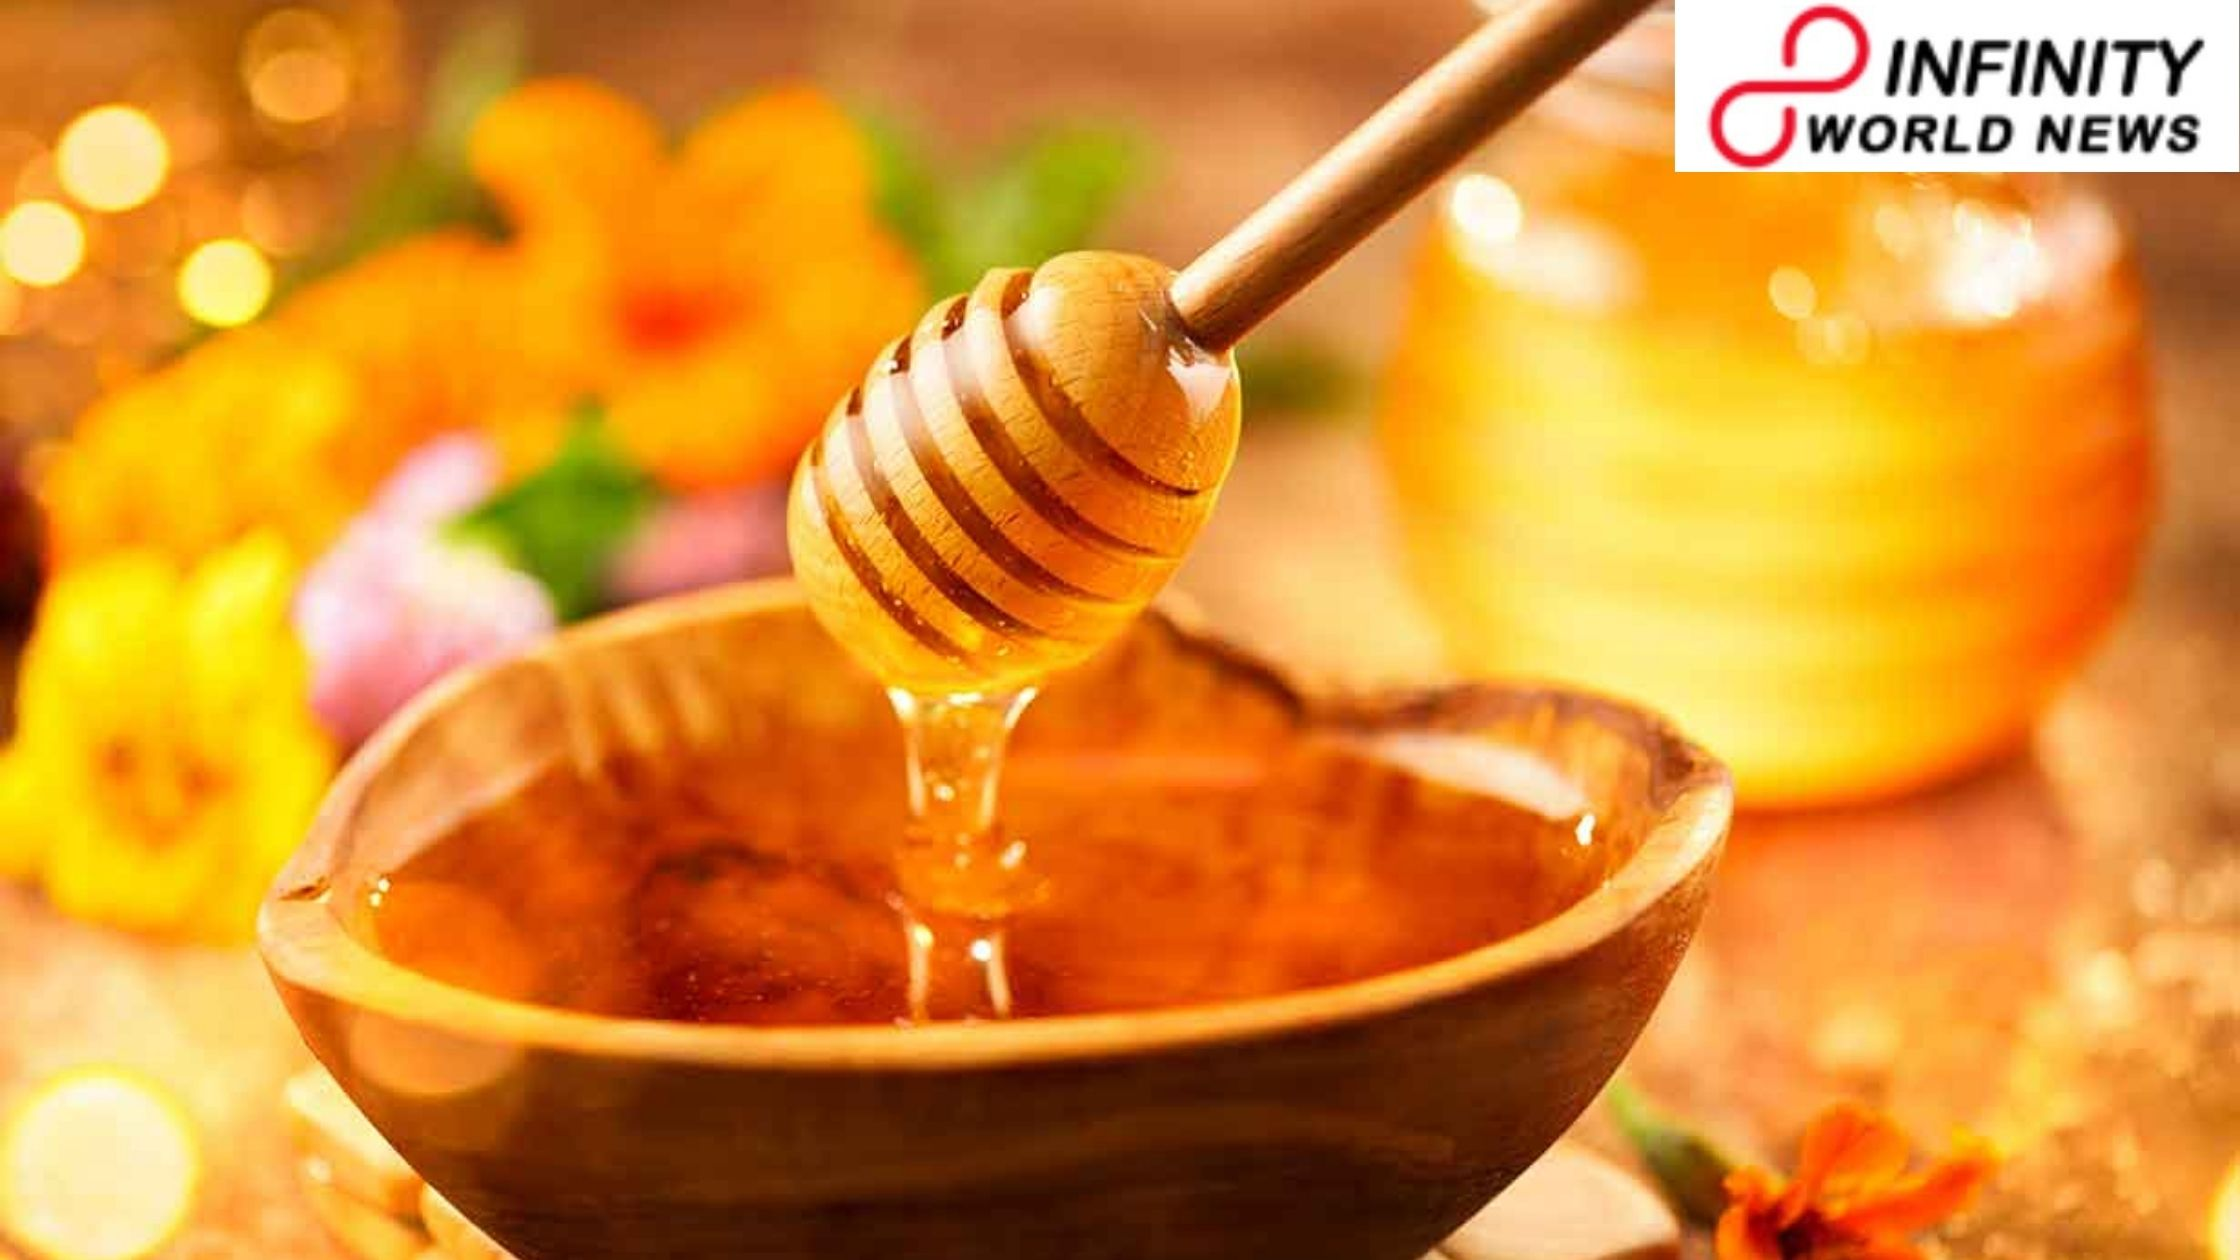 10 out of 13 honey brands come up short 'purity test', discovers CSE examination